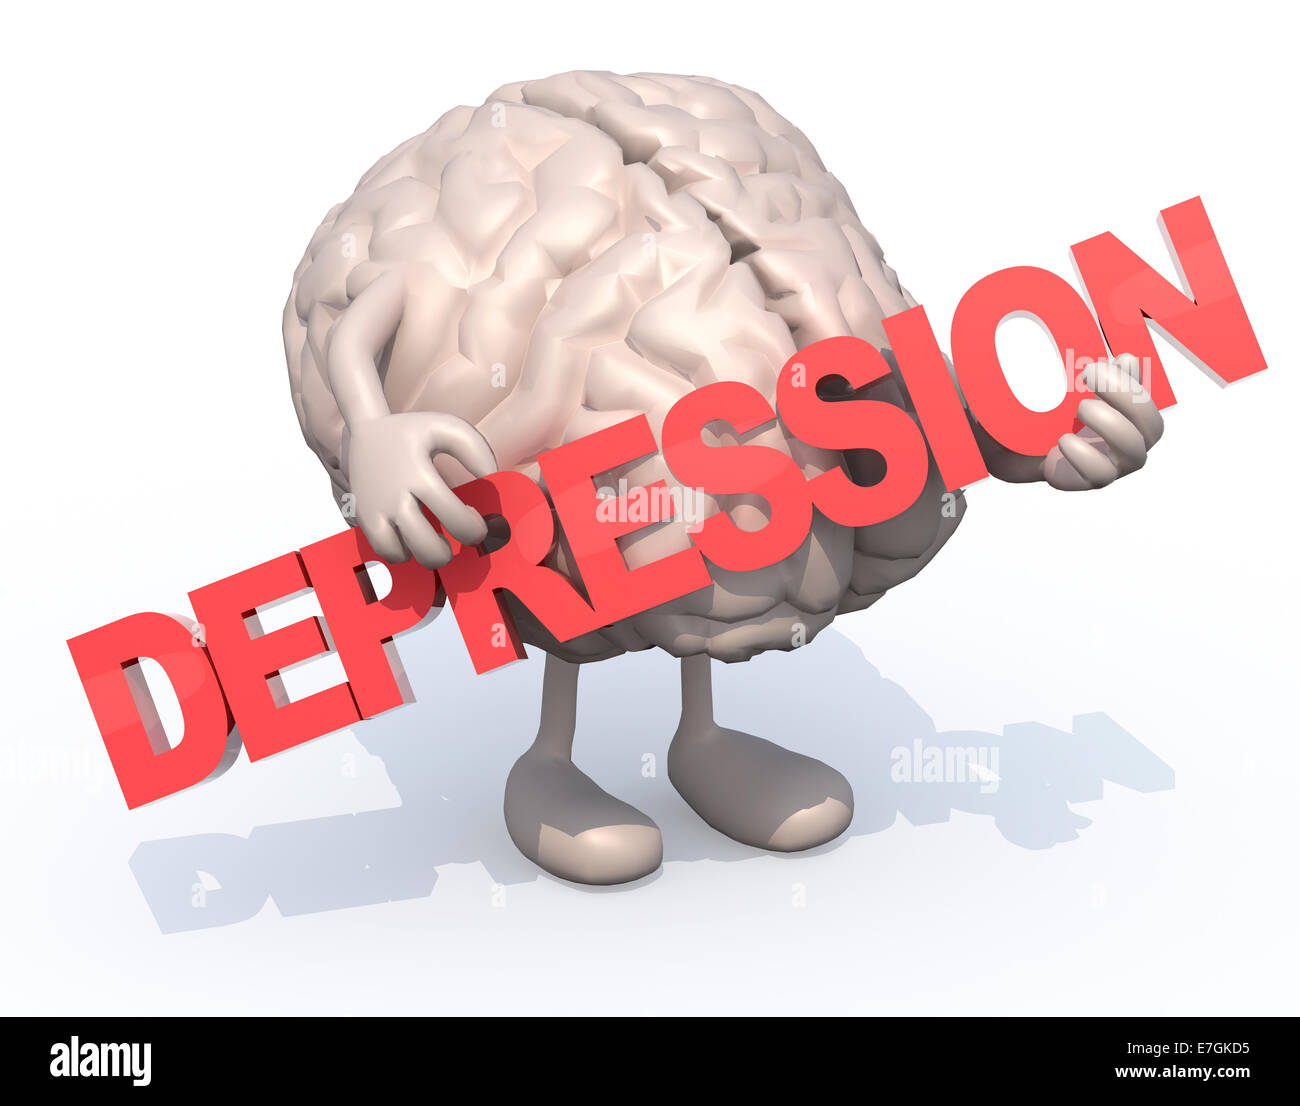 human brain with arts that embraces a word 'depression', 3d illustration - Stock Image